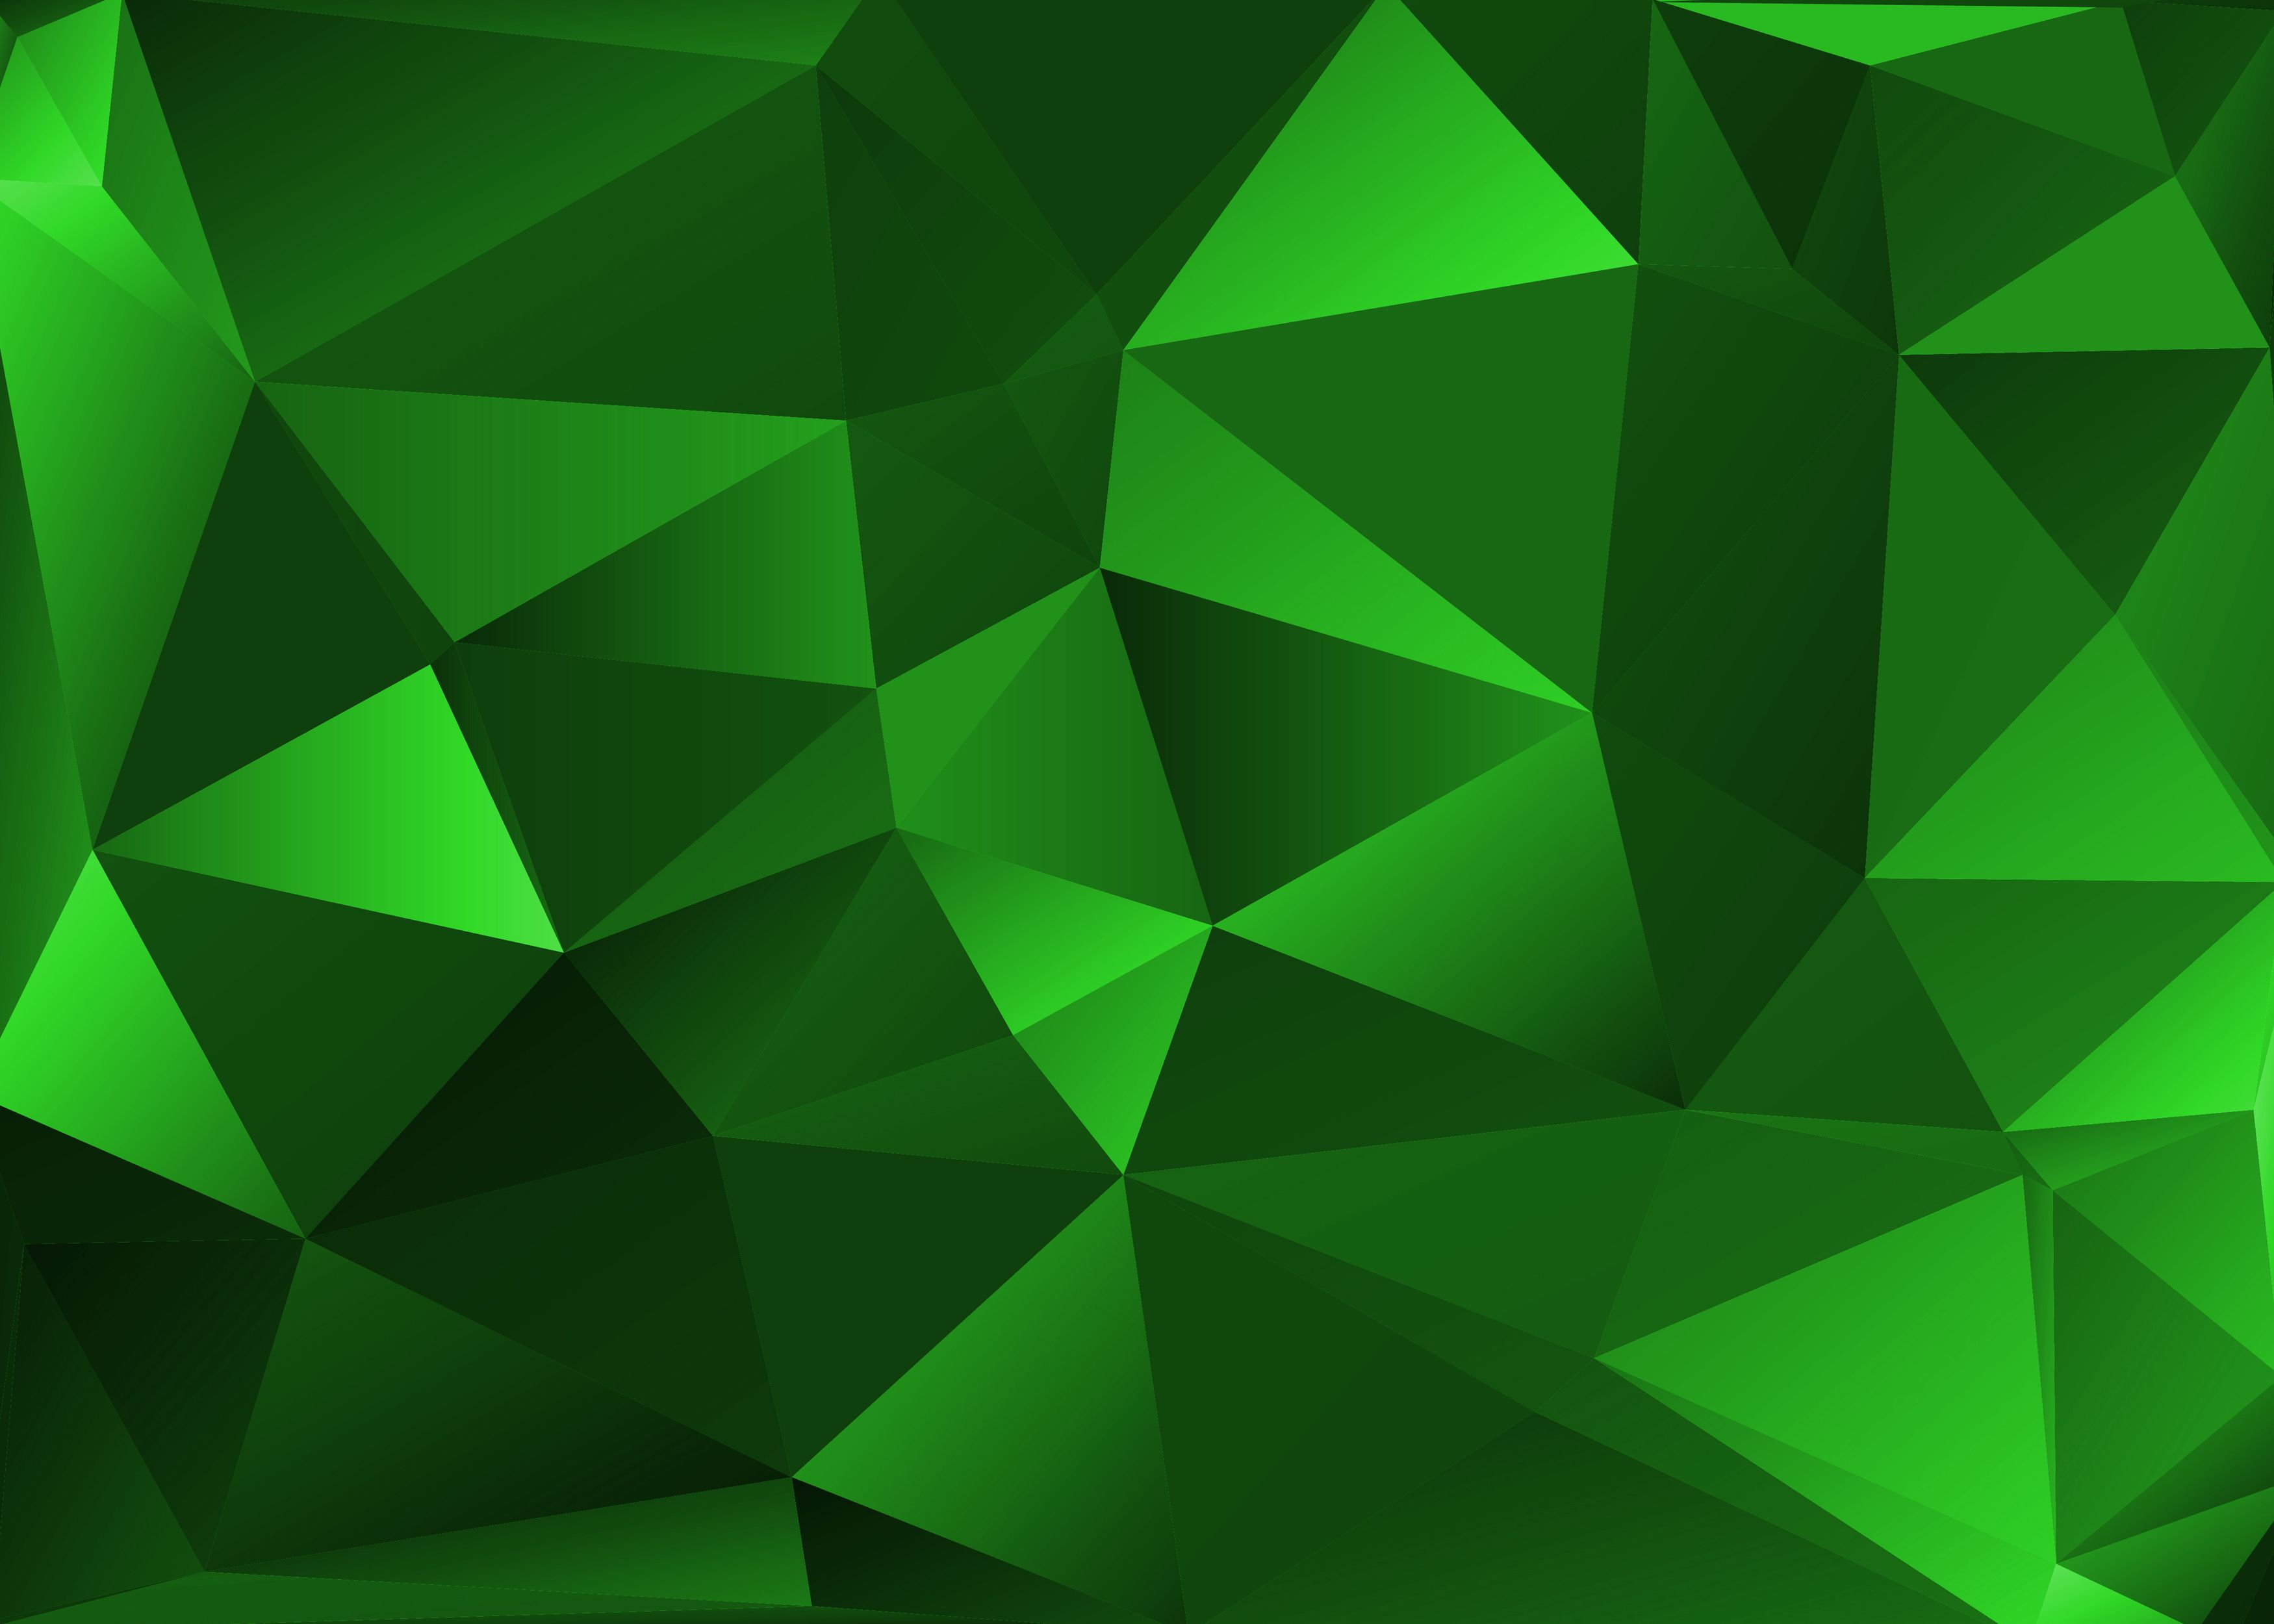 Green Background Perfect Pict For Background 4T0 | grafik ...